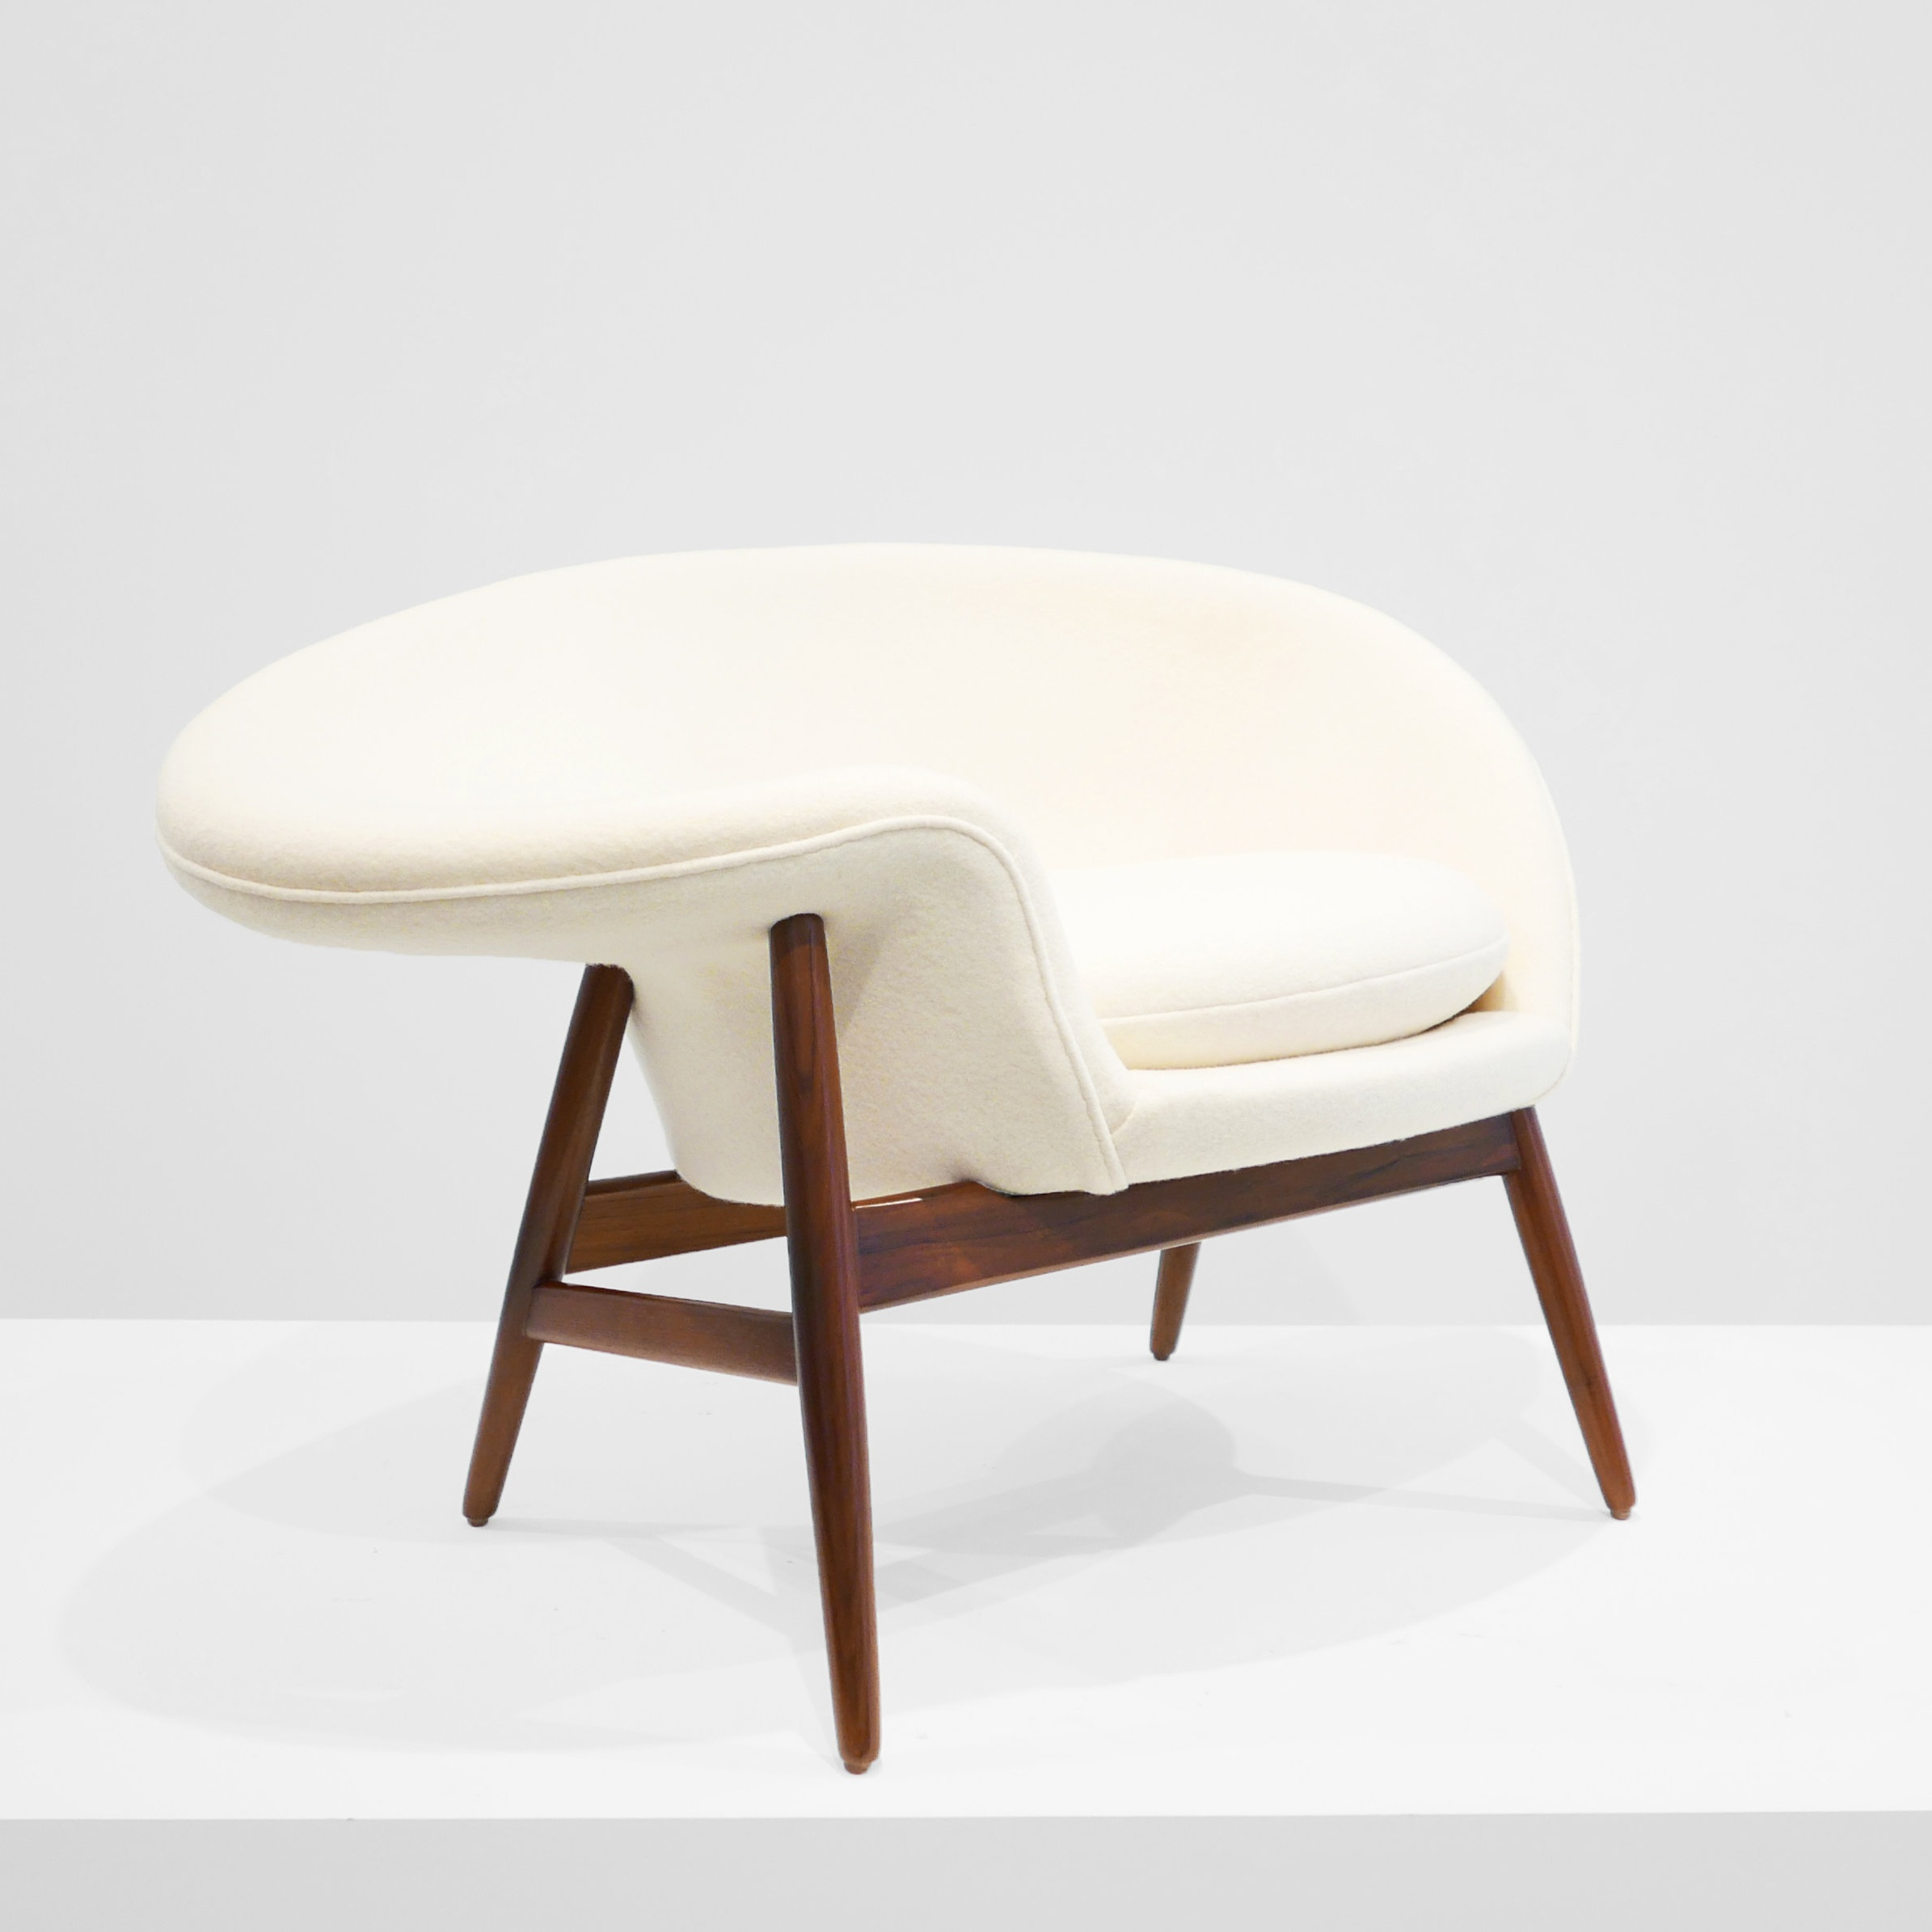 hans olsen  'fried egg' chair  SOLD